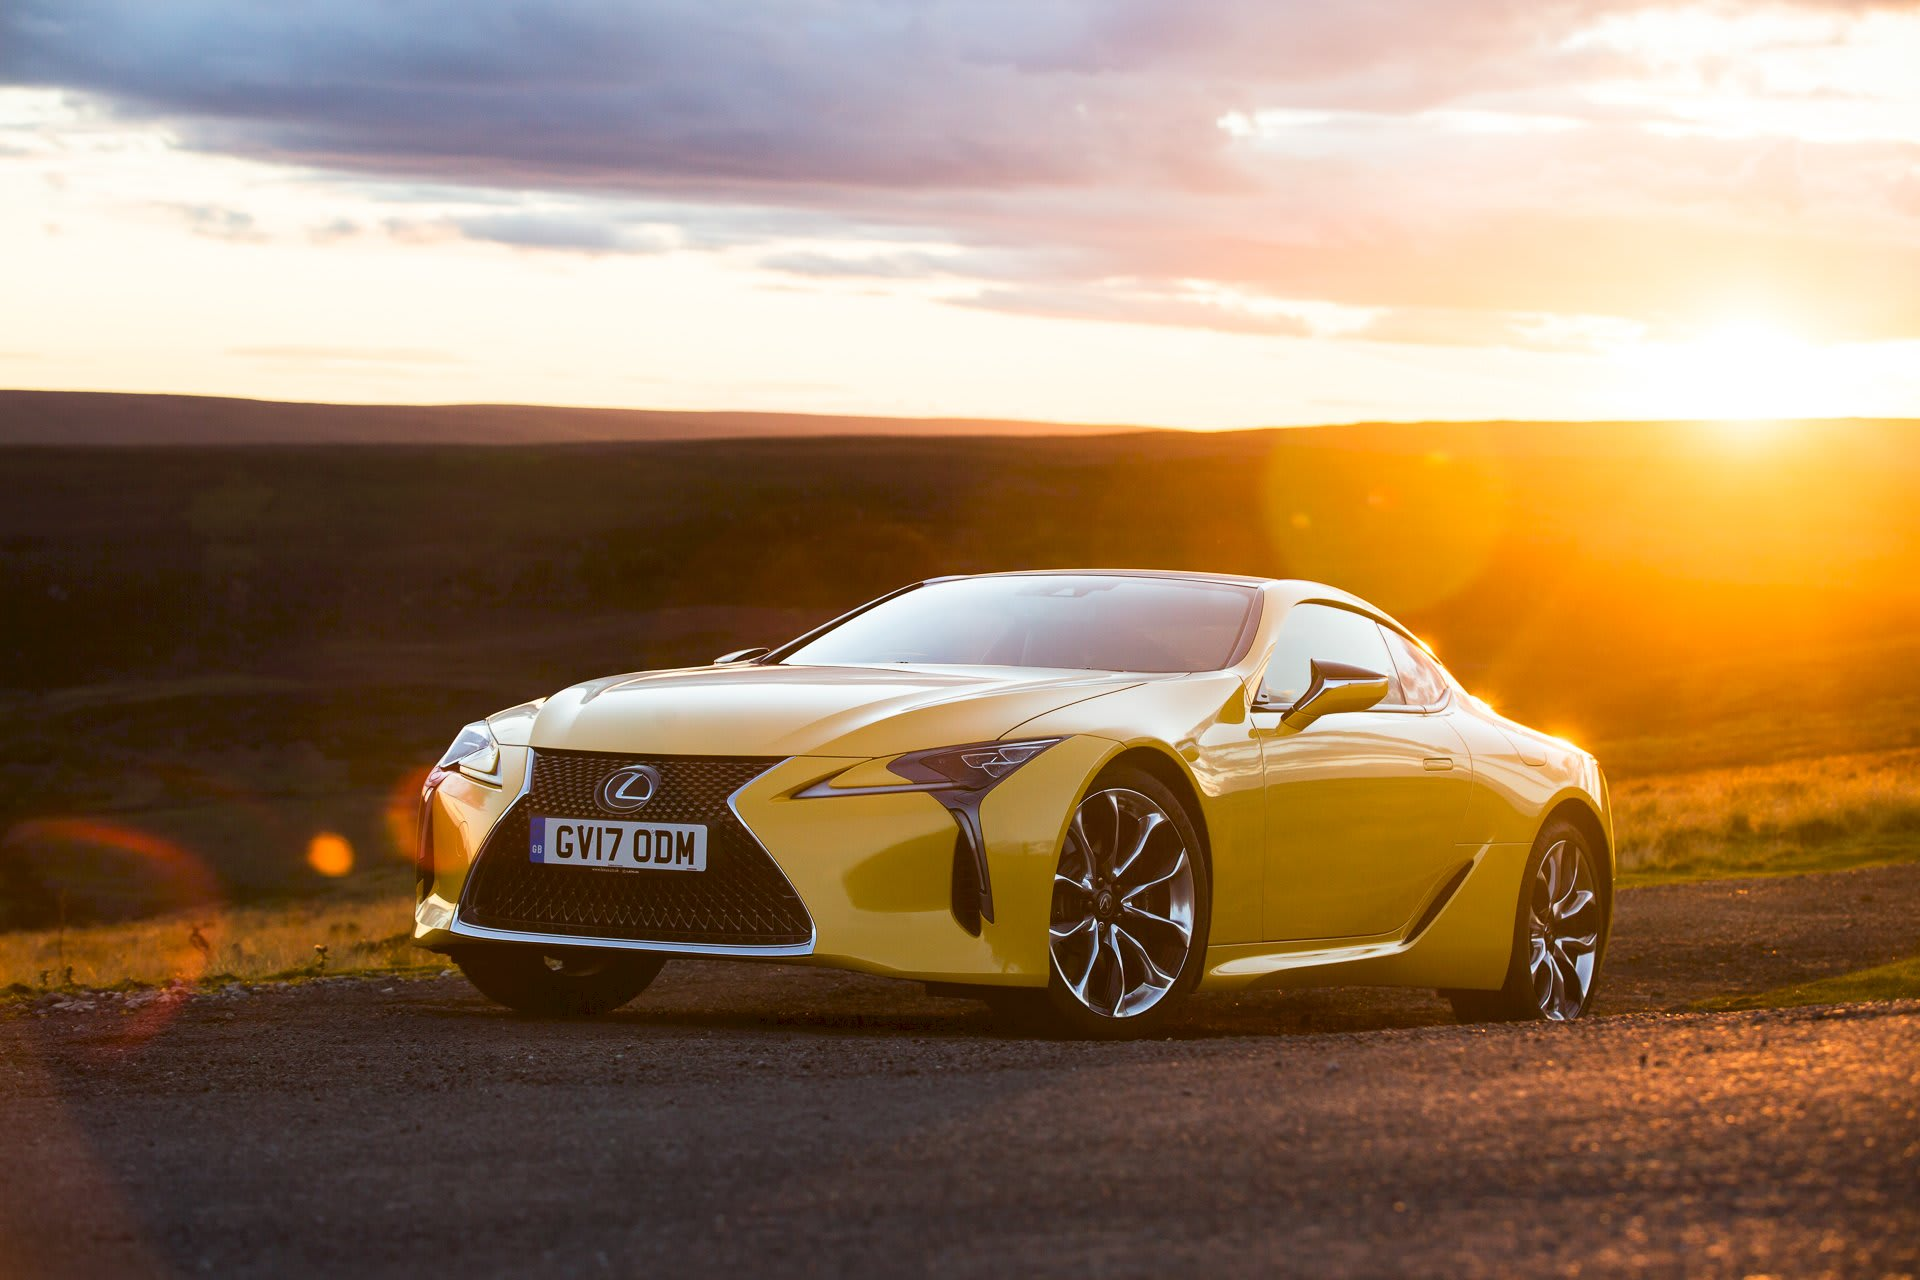 Drive The Lexus LC500 V8 Yellow limited edition